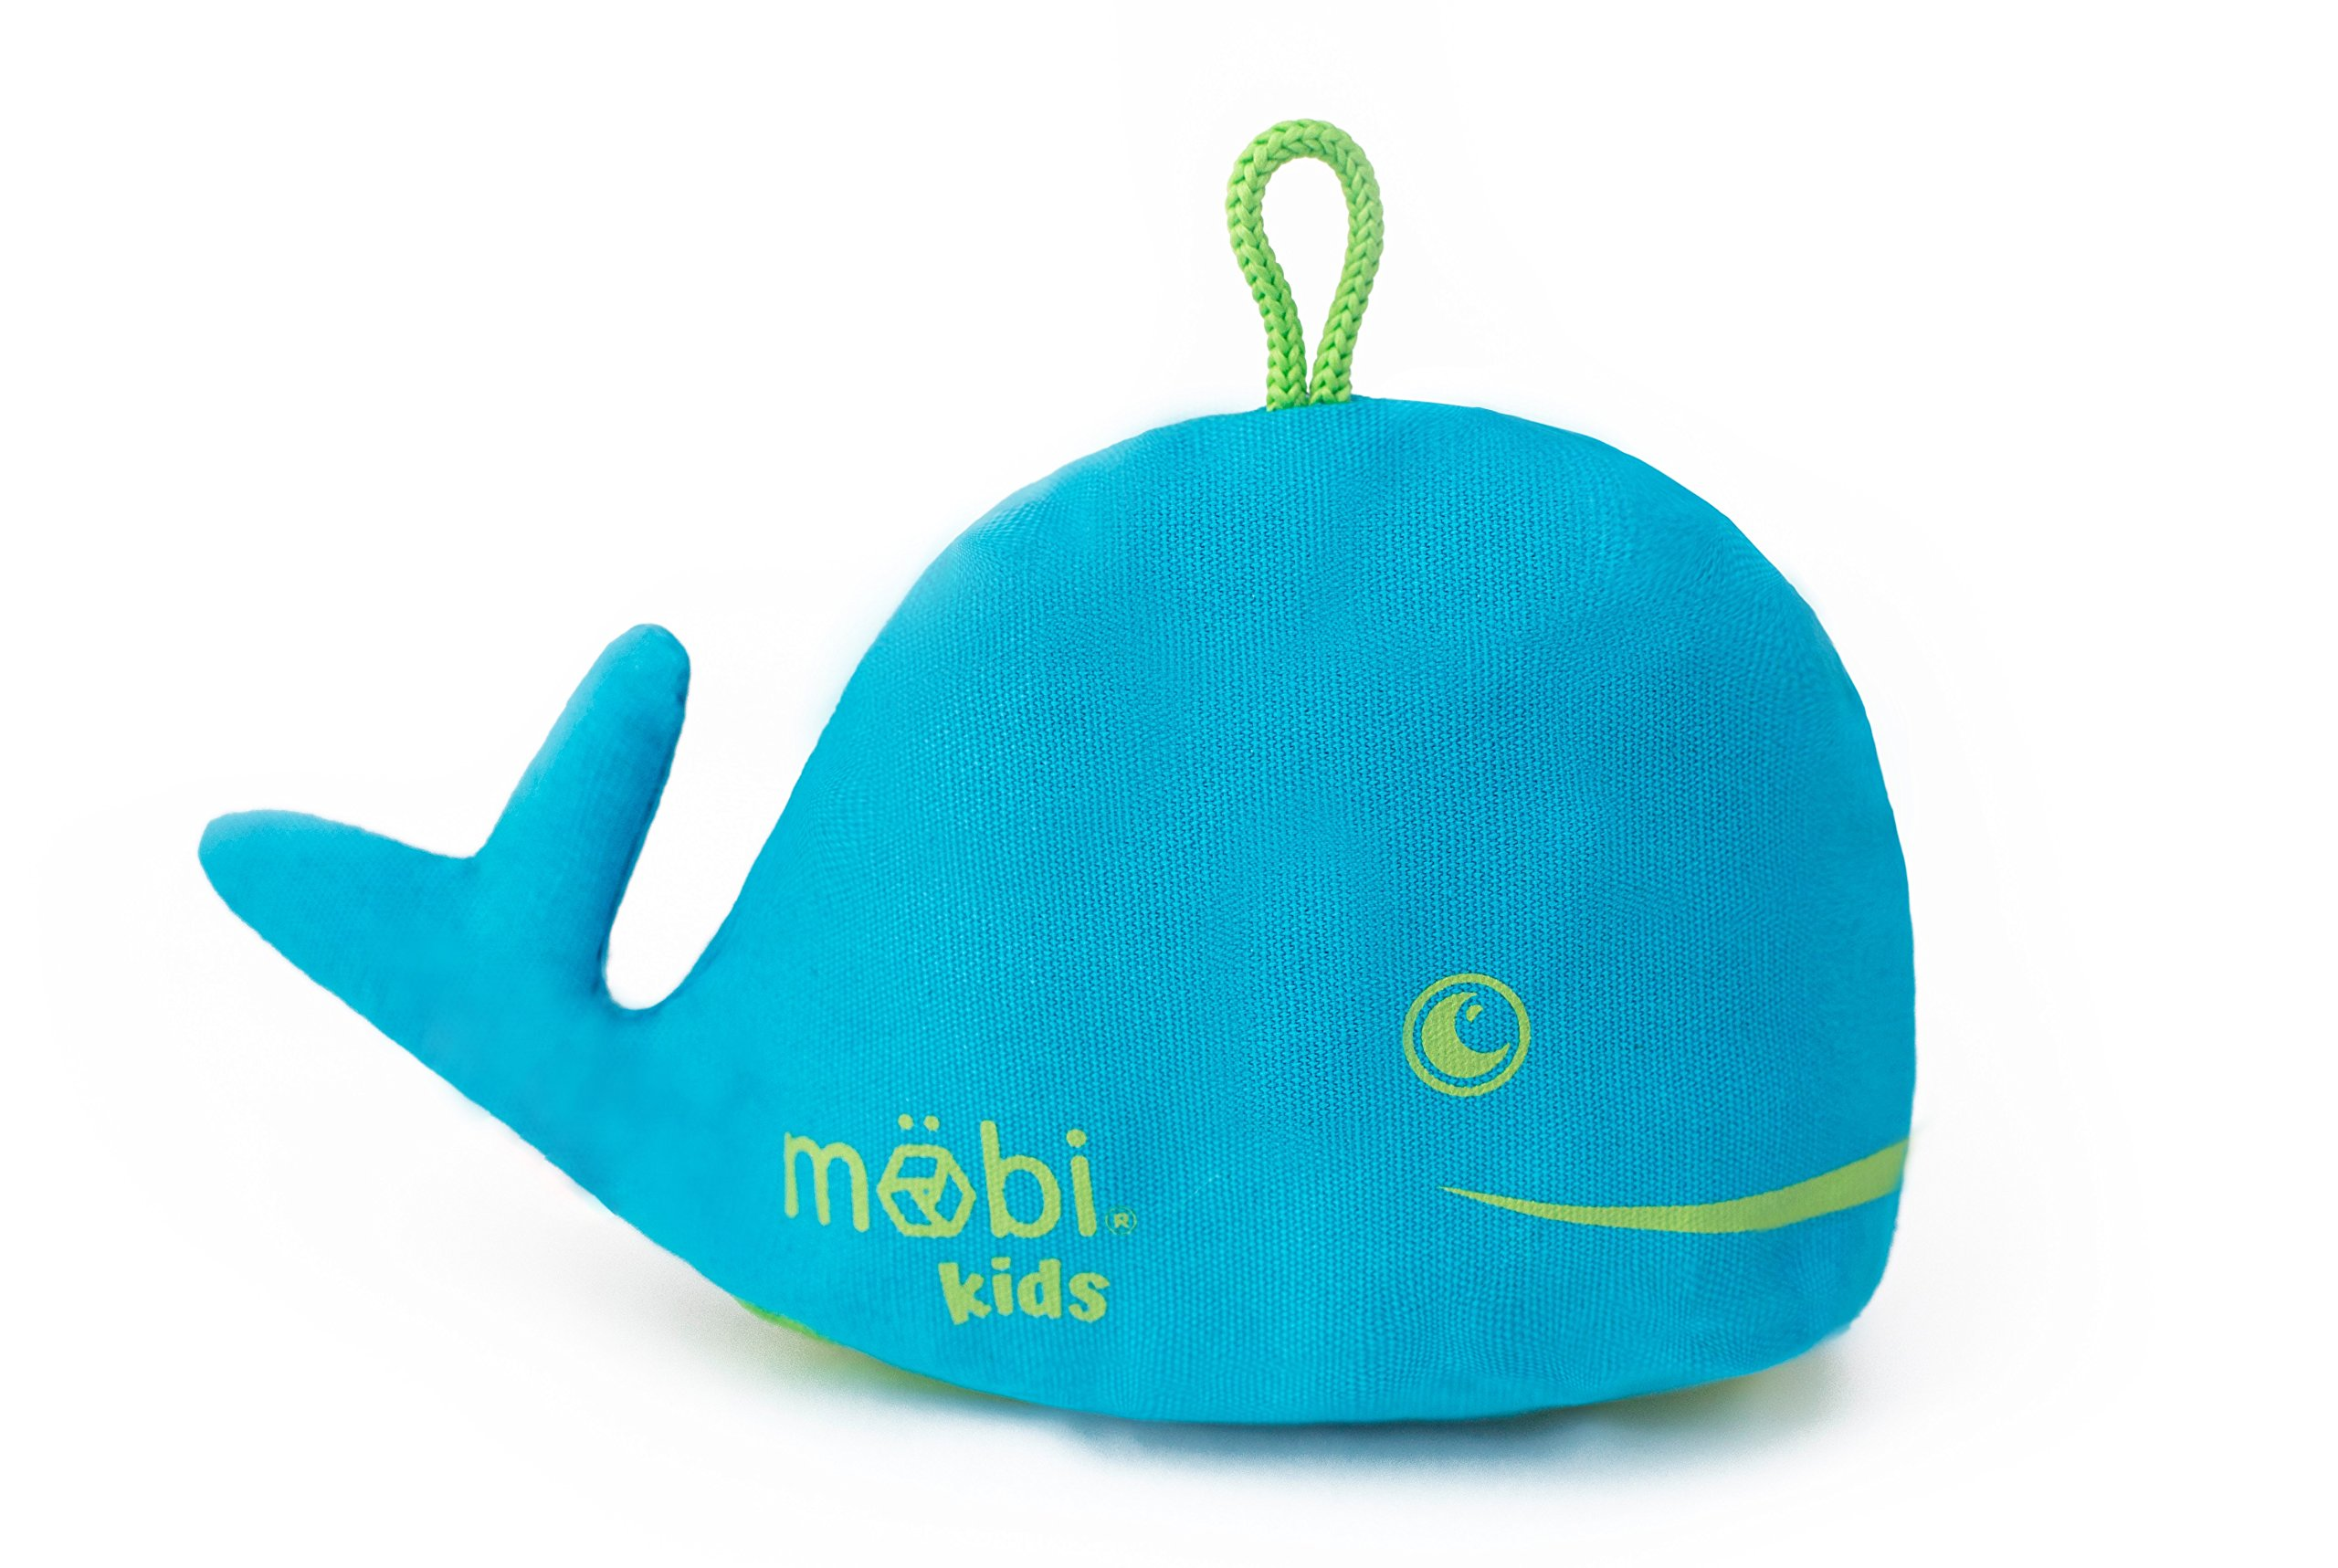 MÖBI Kids-The Numerical Tile Game For Kids in a Whale Pouch with Included Activity Booklet